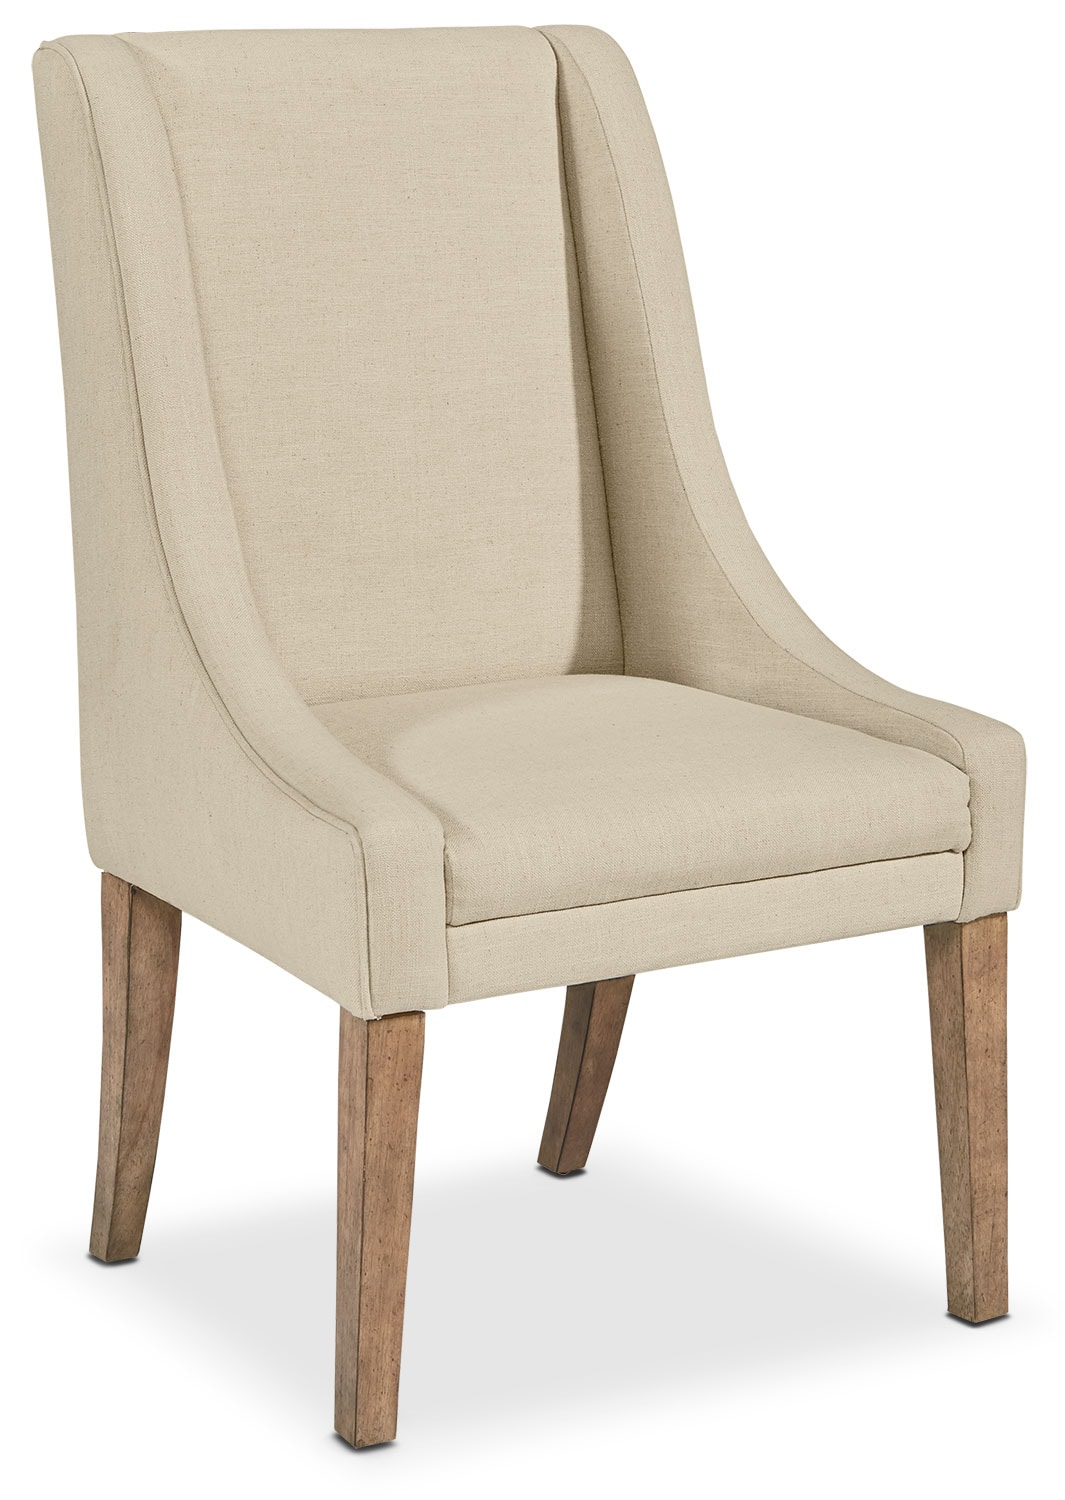 French Demi-Wing Upholstered Side Chair - Linen